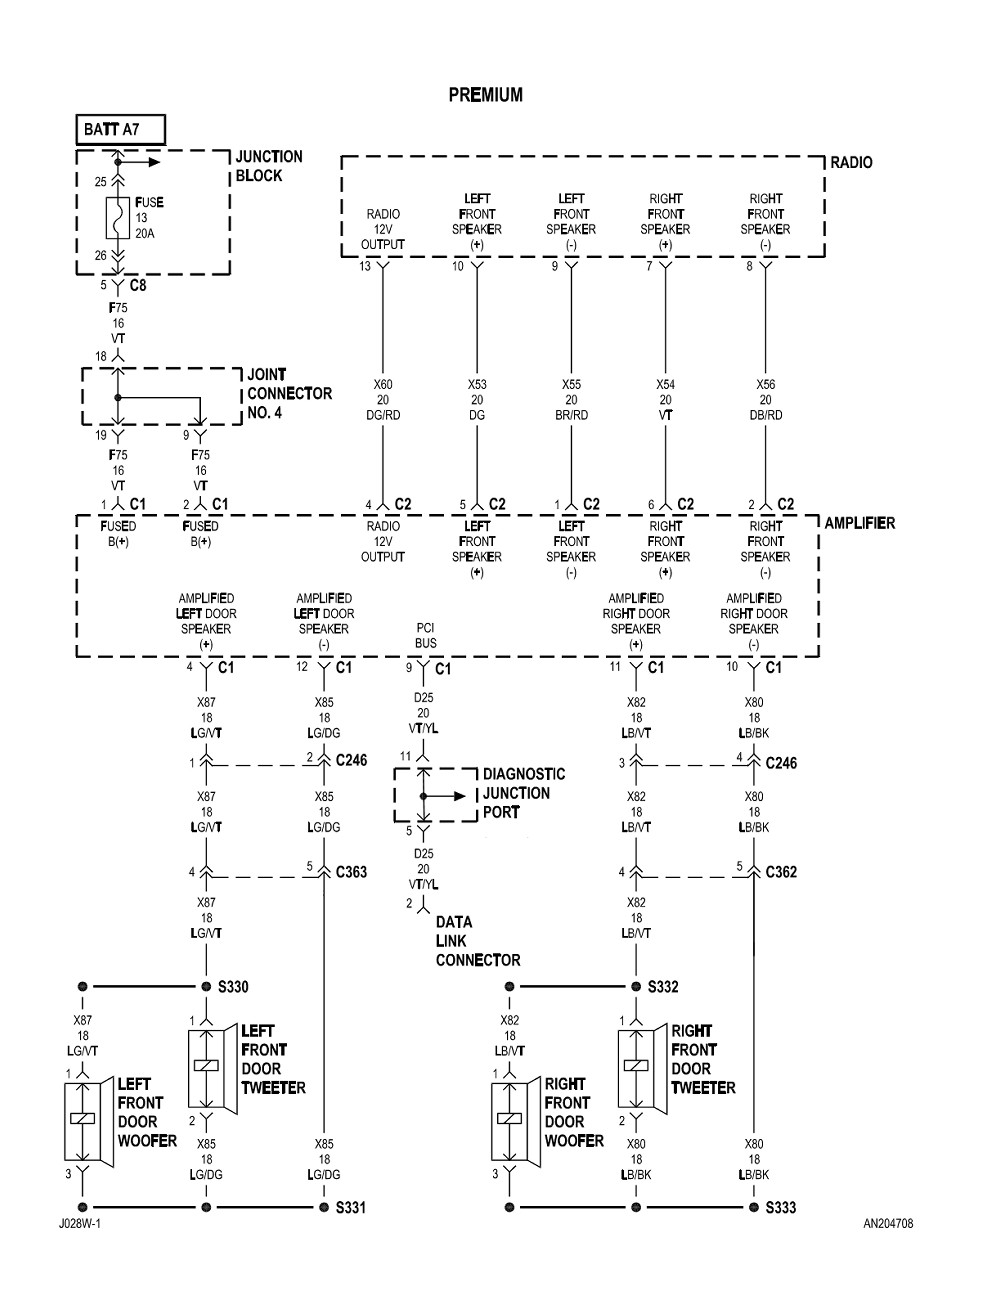 Dodge Dakota Stereo Wiring Diagram from mainetreasurechest.com